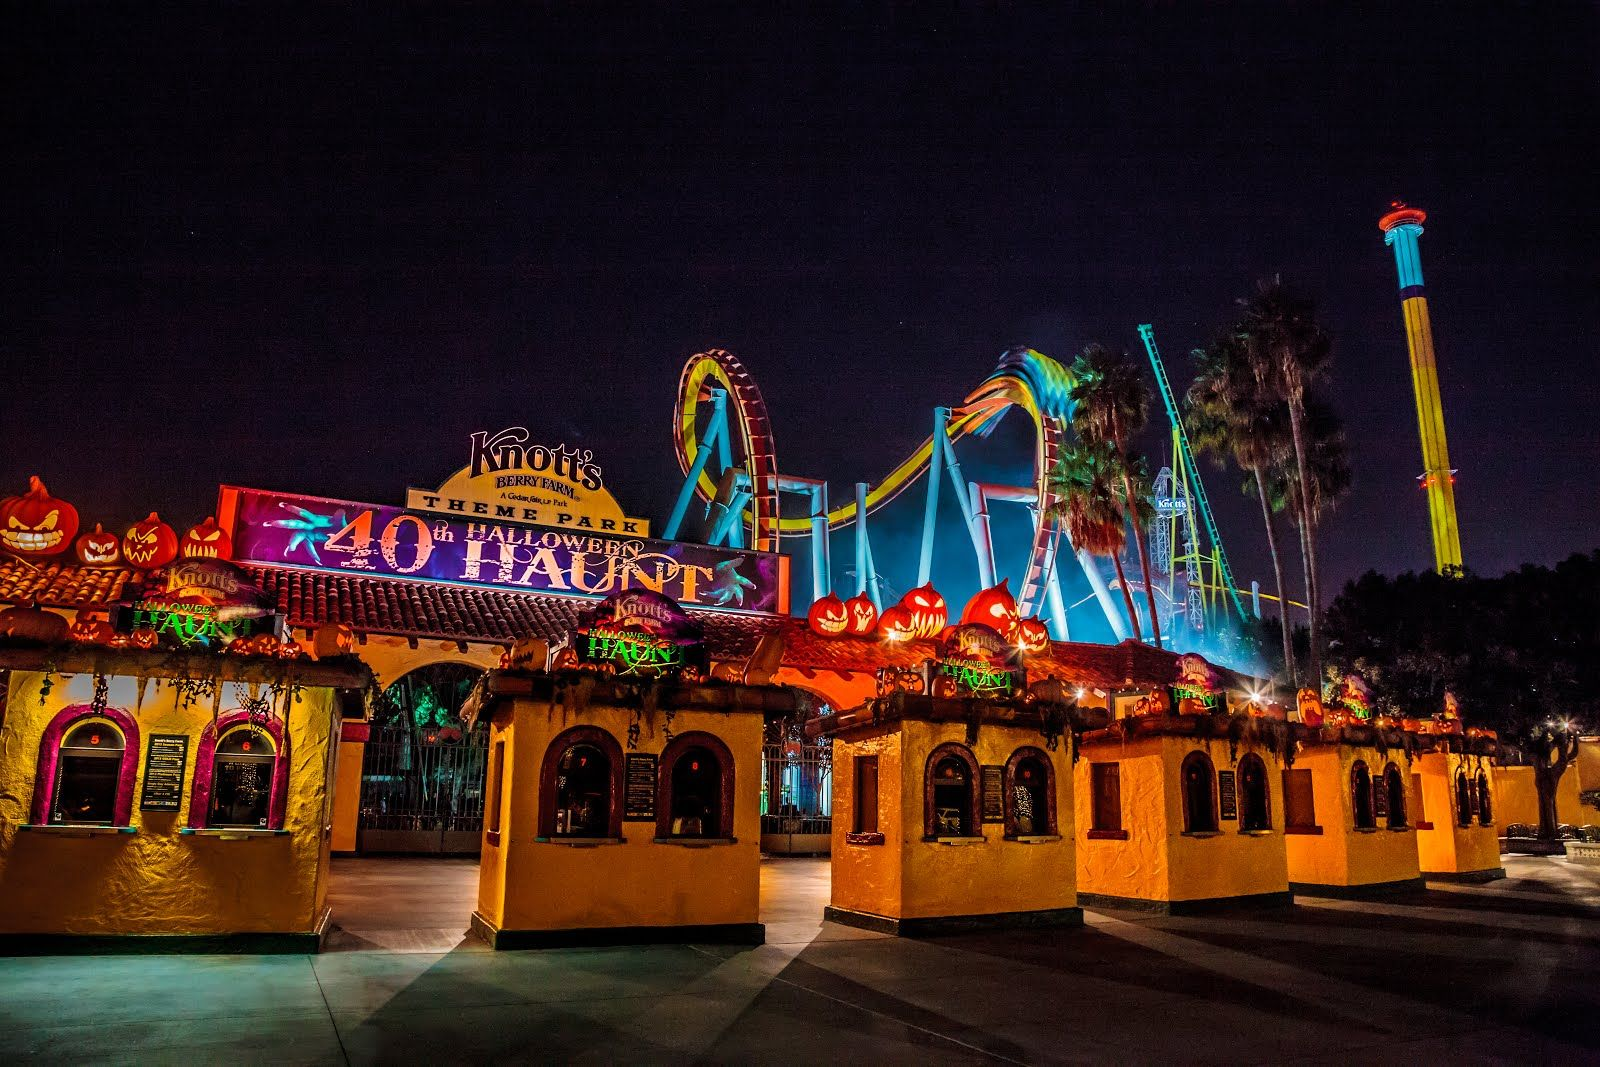 halloween is a boo tiful time of year at knotts berry farm visit the theme park to experience the longest running halloween event in the world - Farm Halloween